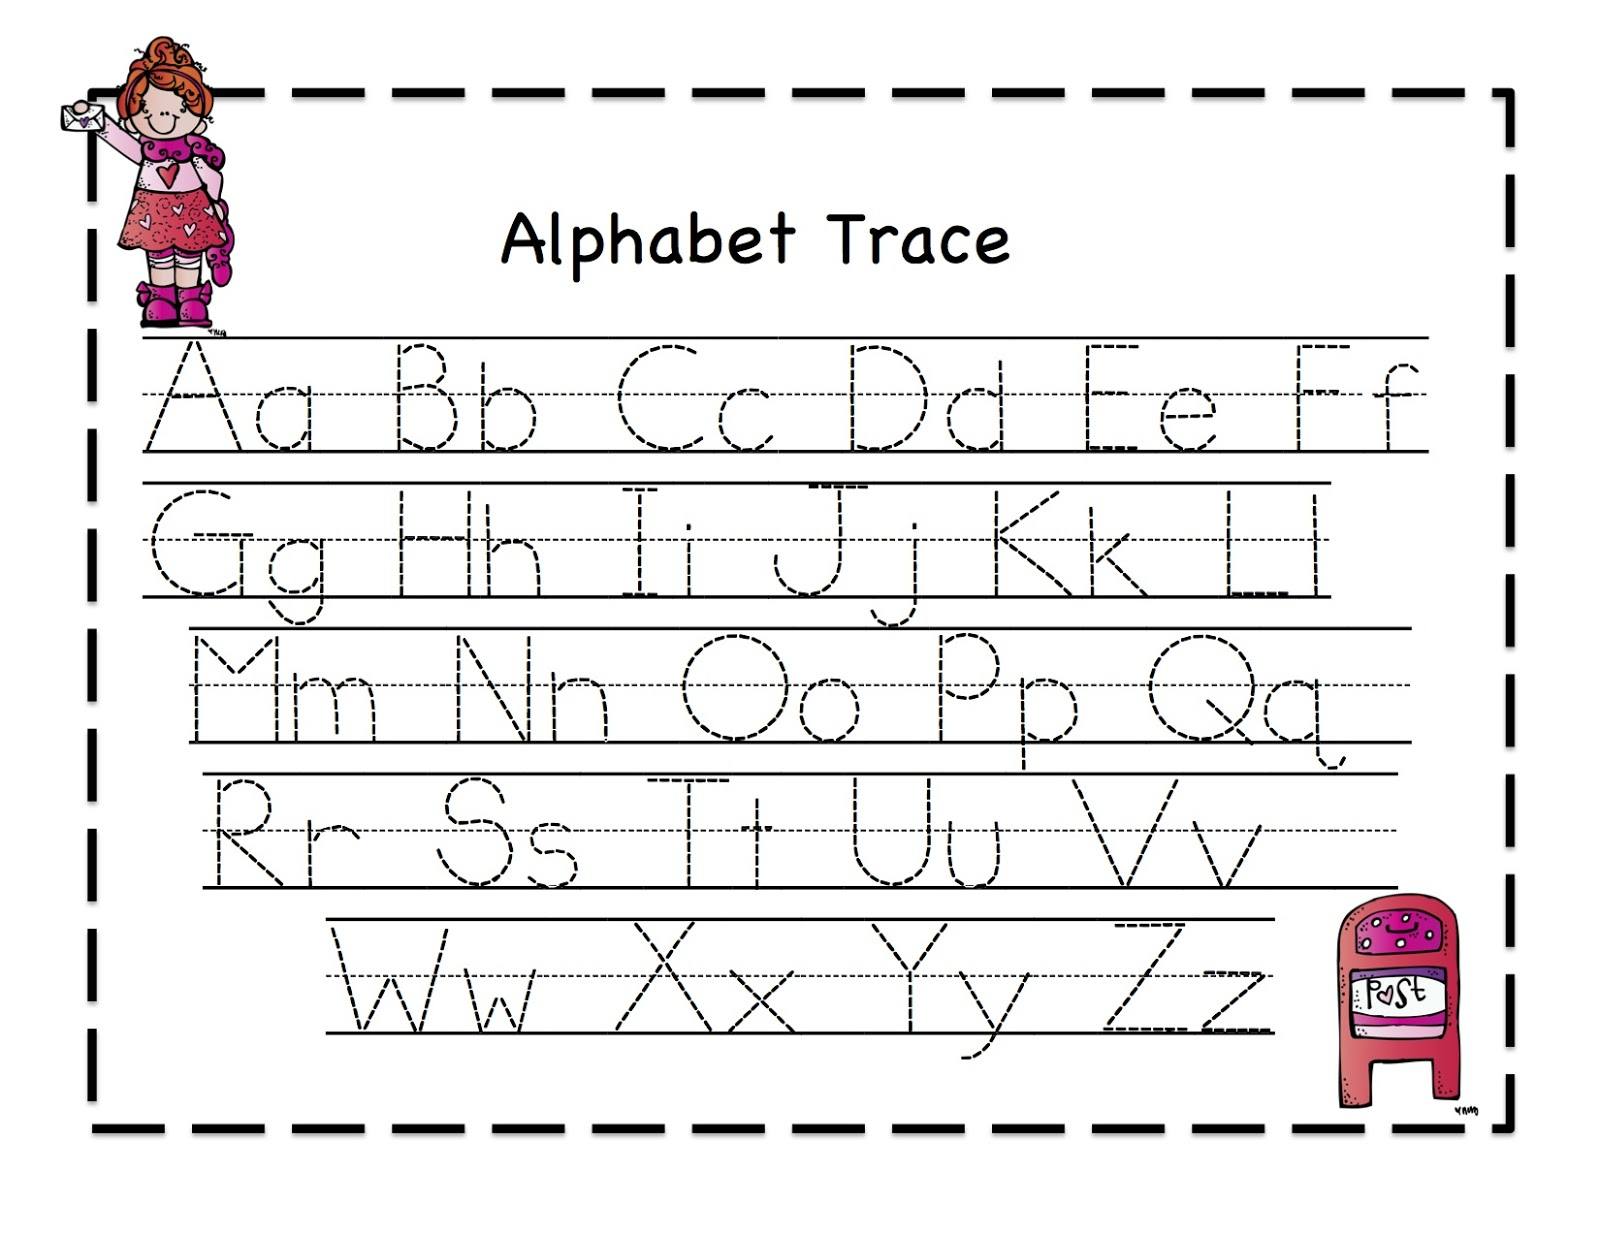 worksheet Abc Handwriting Worksheets abc traceable worksheets abitlikethis 1600 x 1236 jpeg 214kb tracing new calendar template